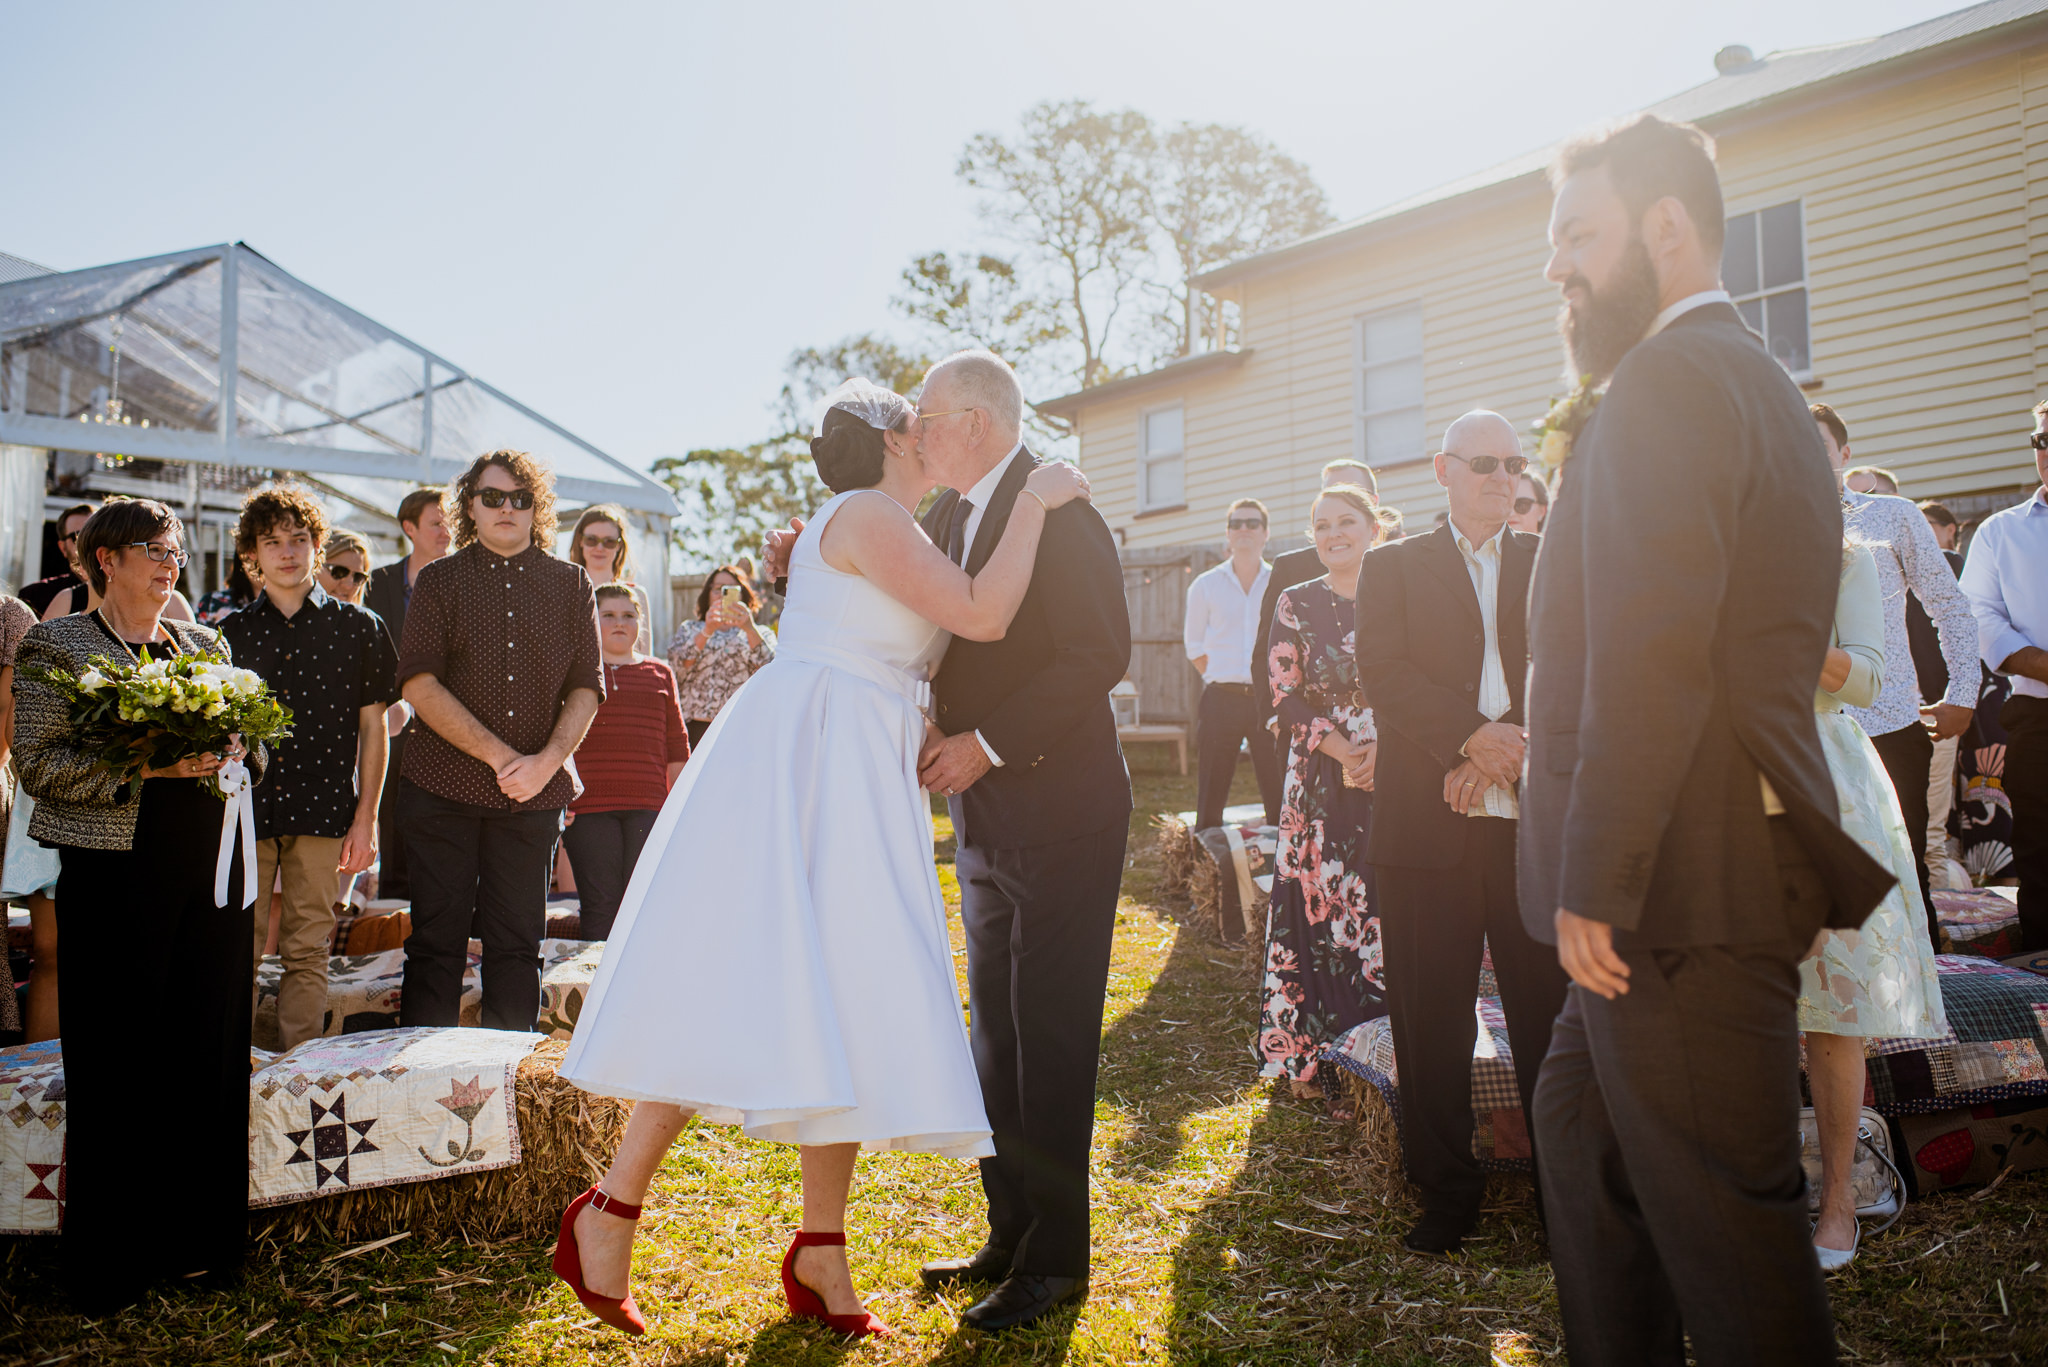 A bride kisses her father on the cheek as he walks her down her wedding aisle